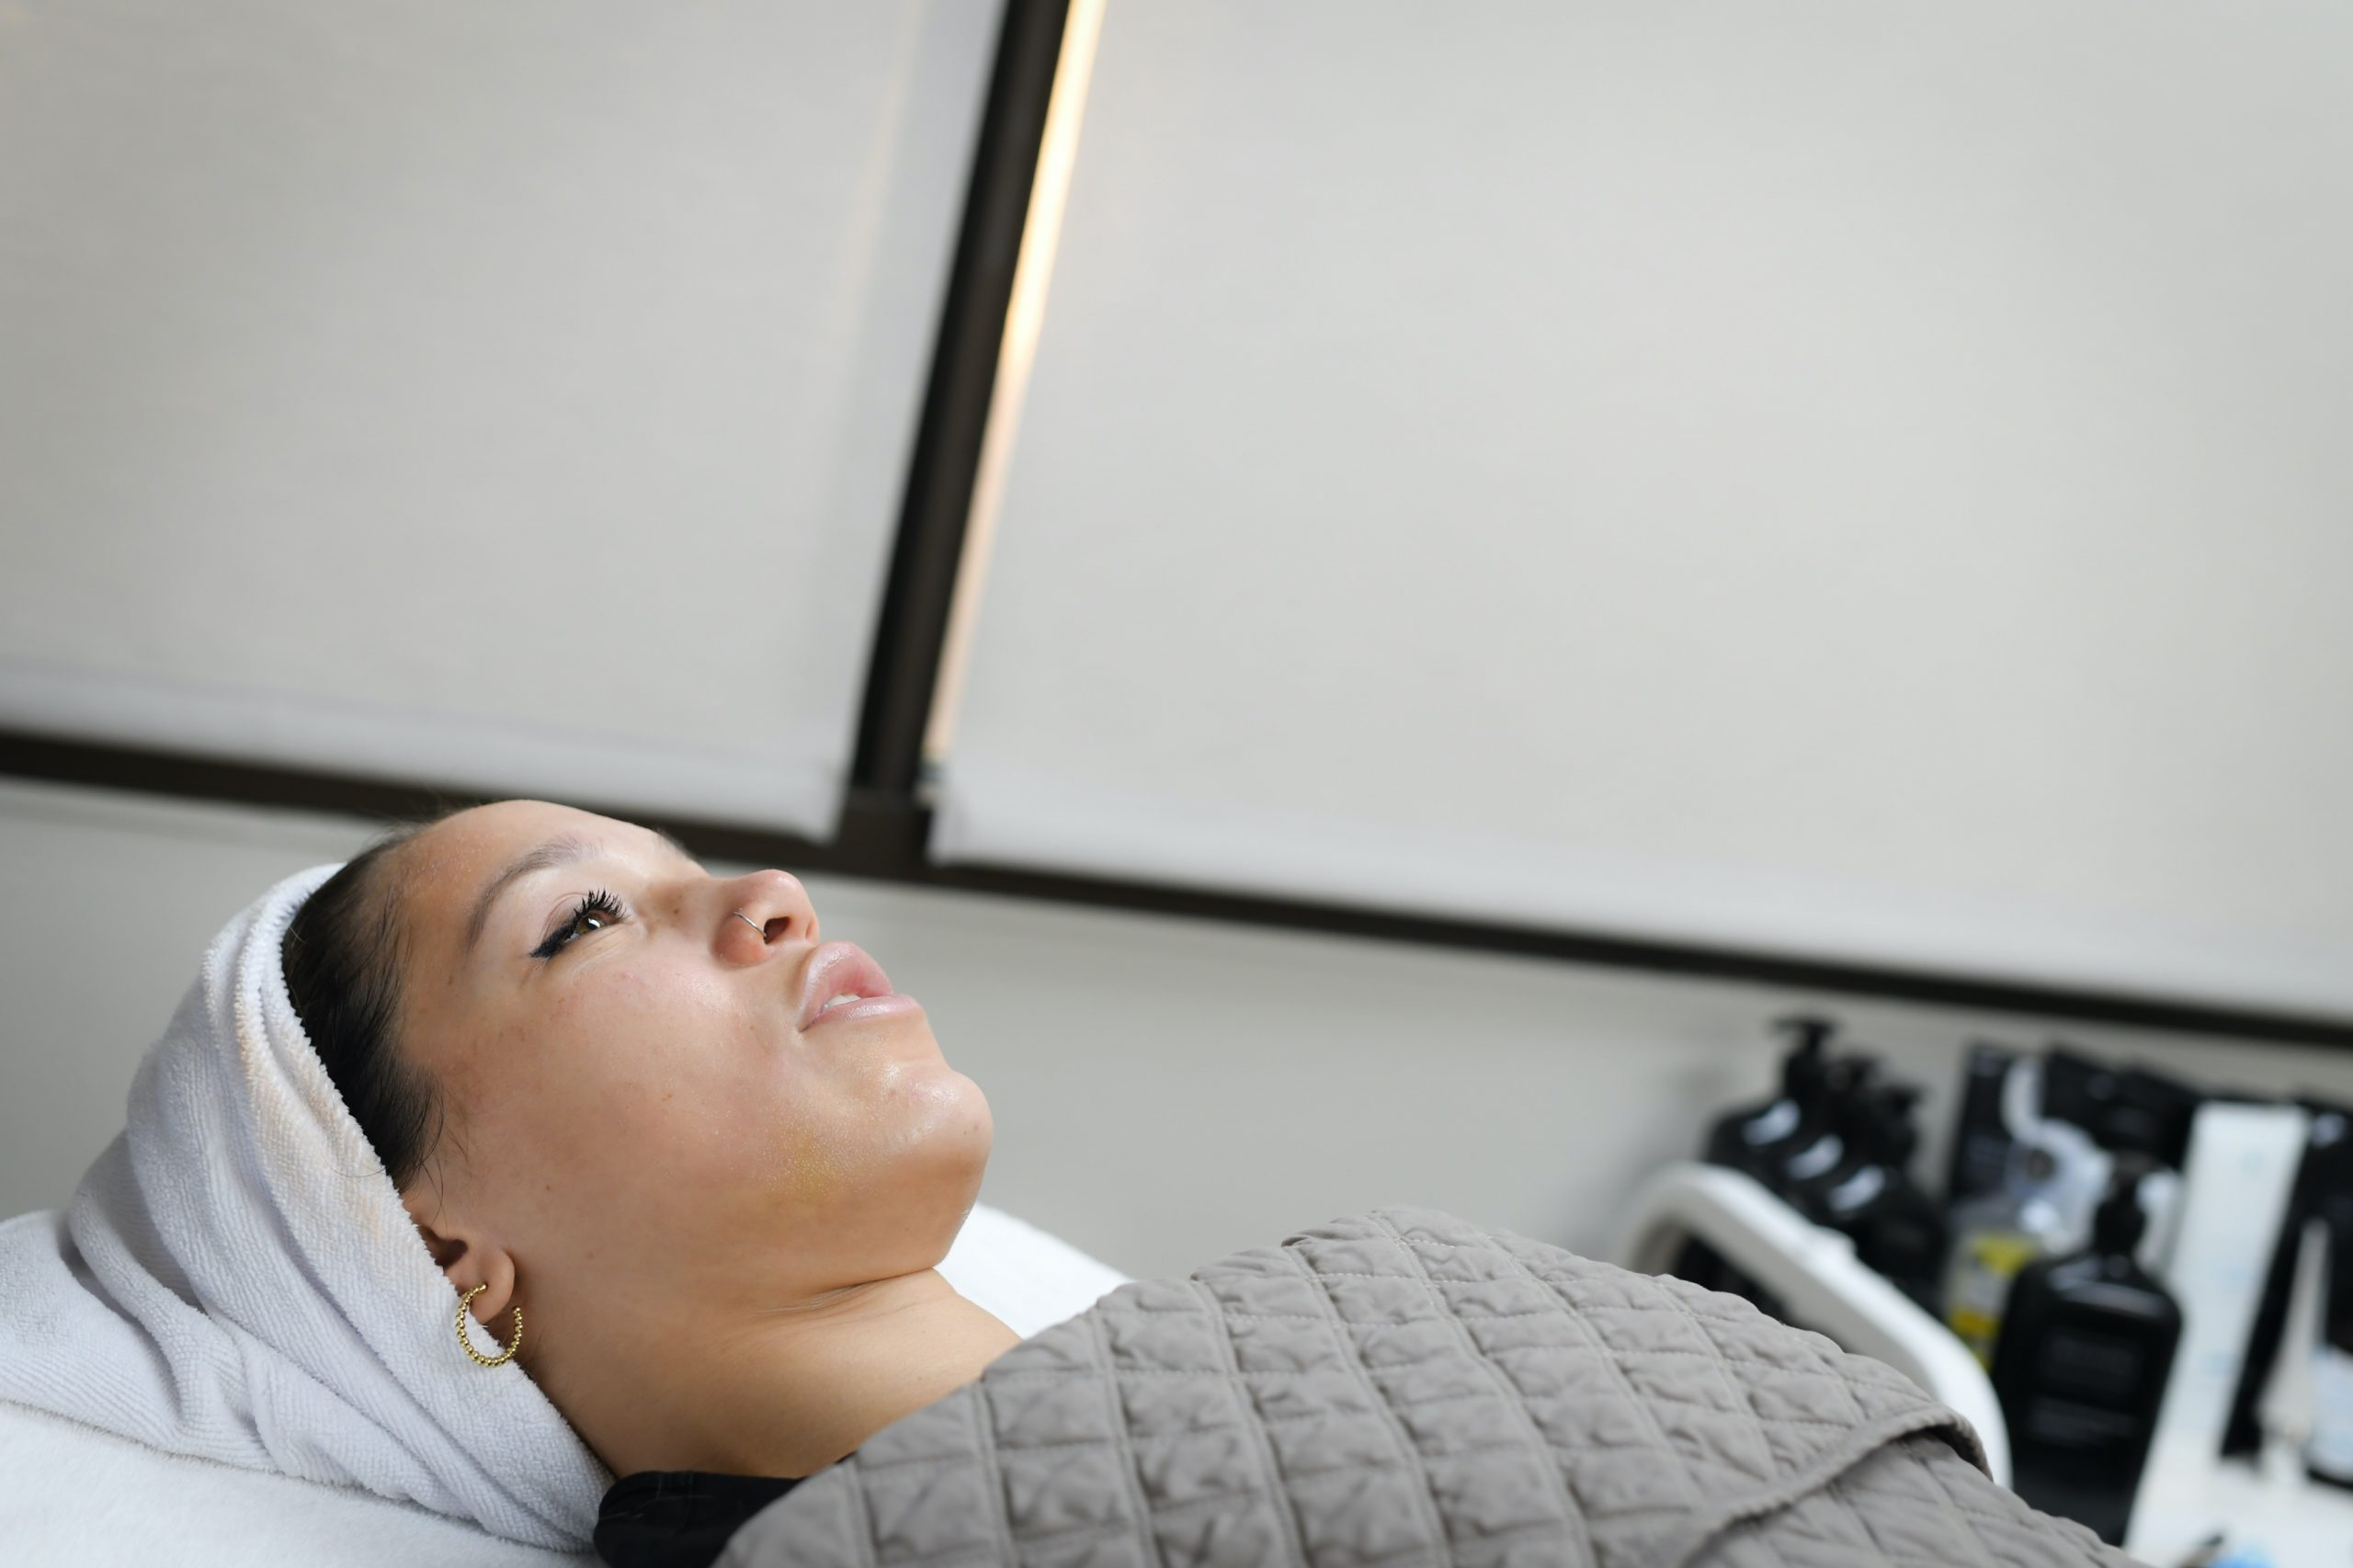 Is Your Neck Getting The Care It Needs?